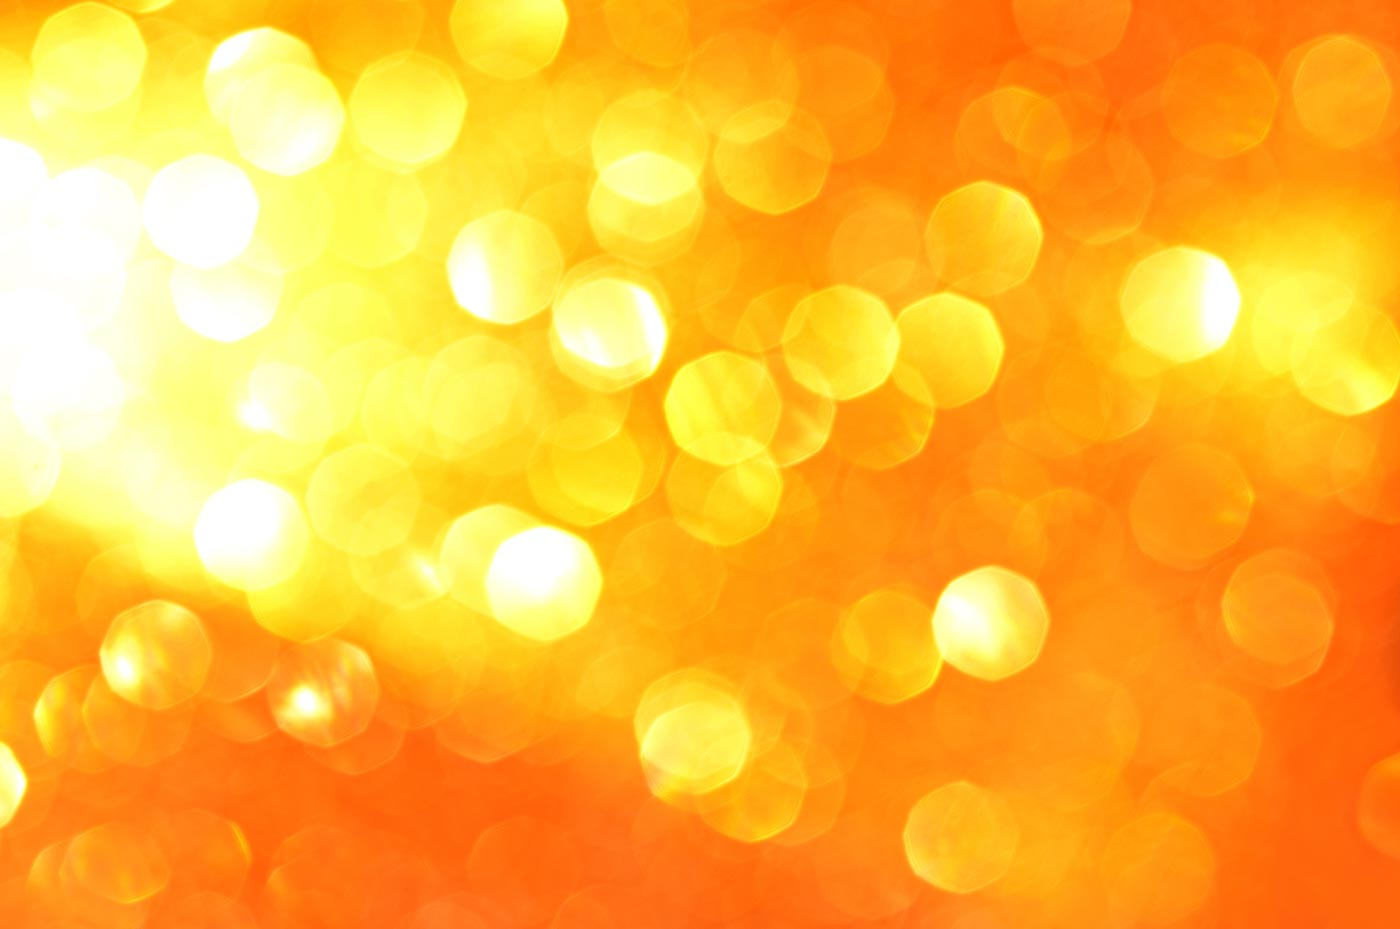 Neon Fall Wallpapers Download Orange Light Wallpapers 34827 1400x929 Px High